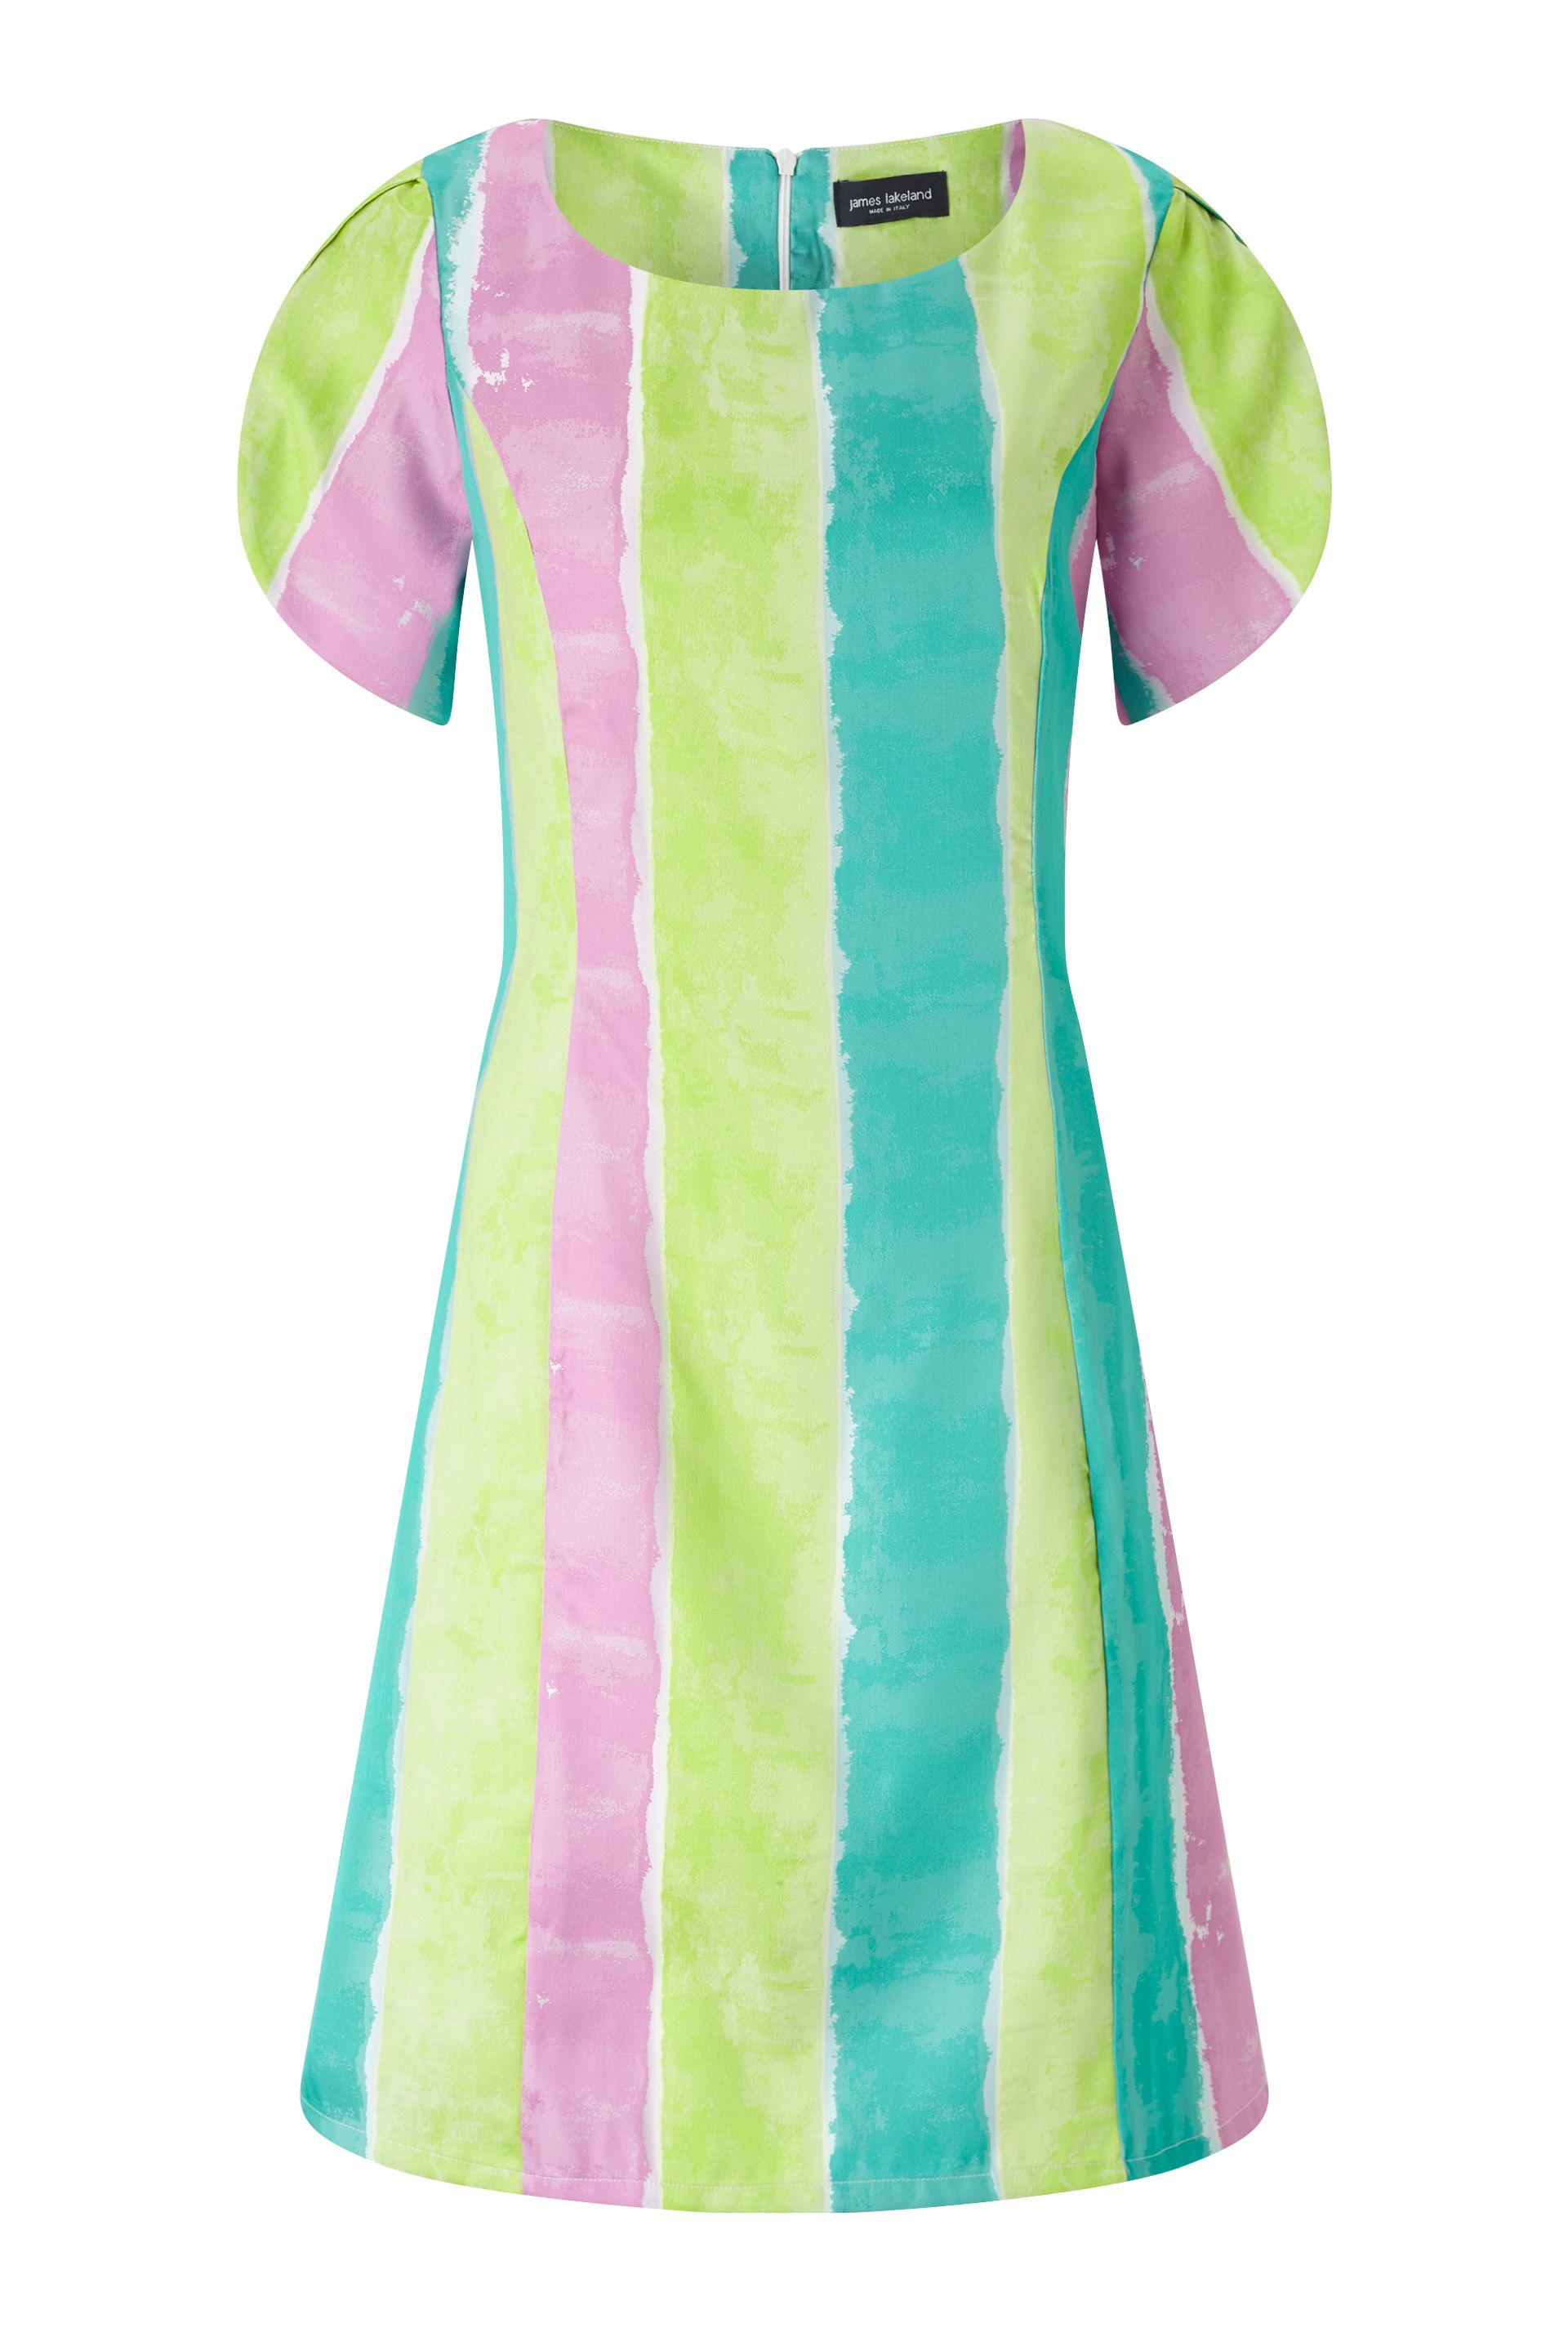 James Lakeland Stripe A Line Dress, Fuchsia